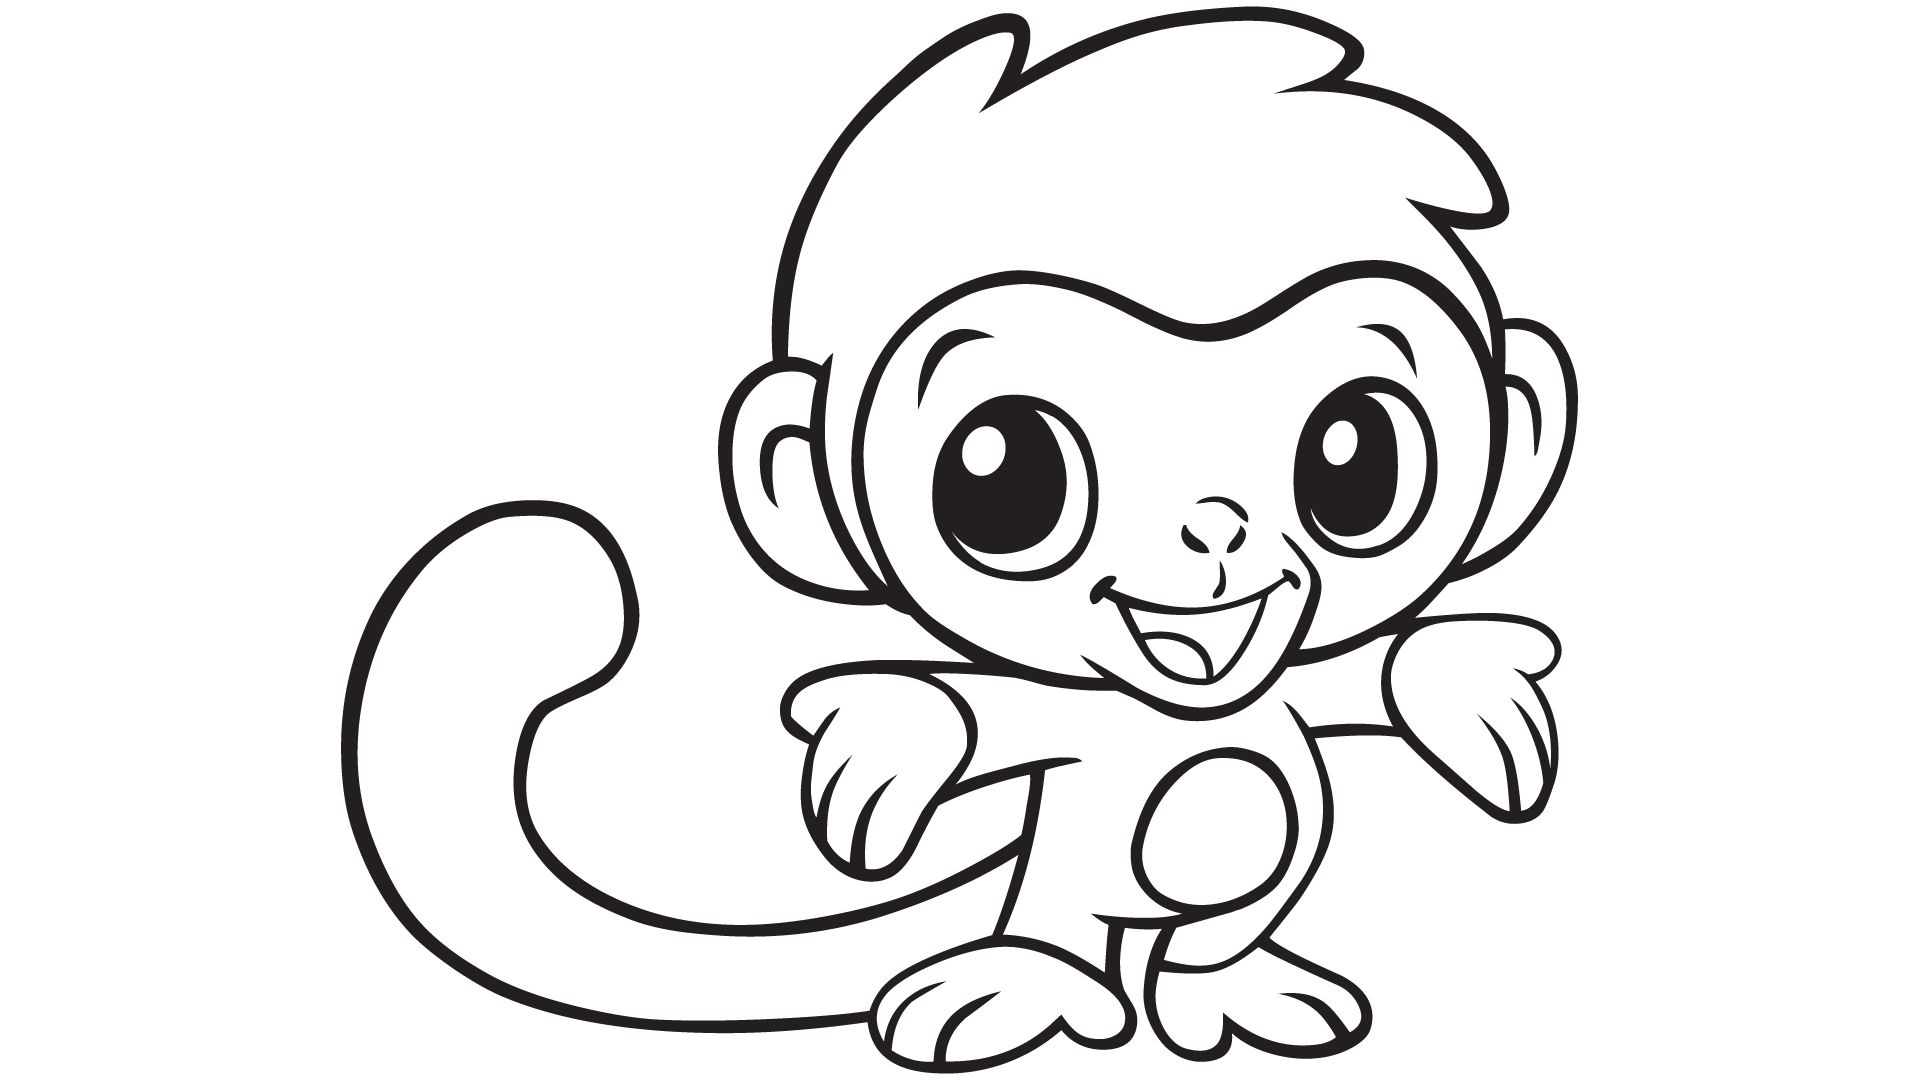 Imagination Monkeys to Color Cute Coloring Pages Baby Gallery Of Cute Coloring Pages for Girls Printable Kids Colouring Pages Kids Gallery